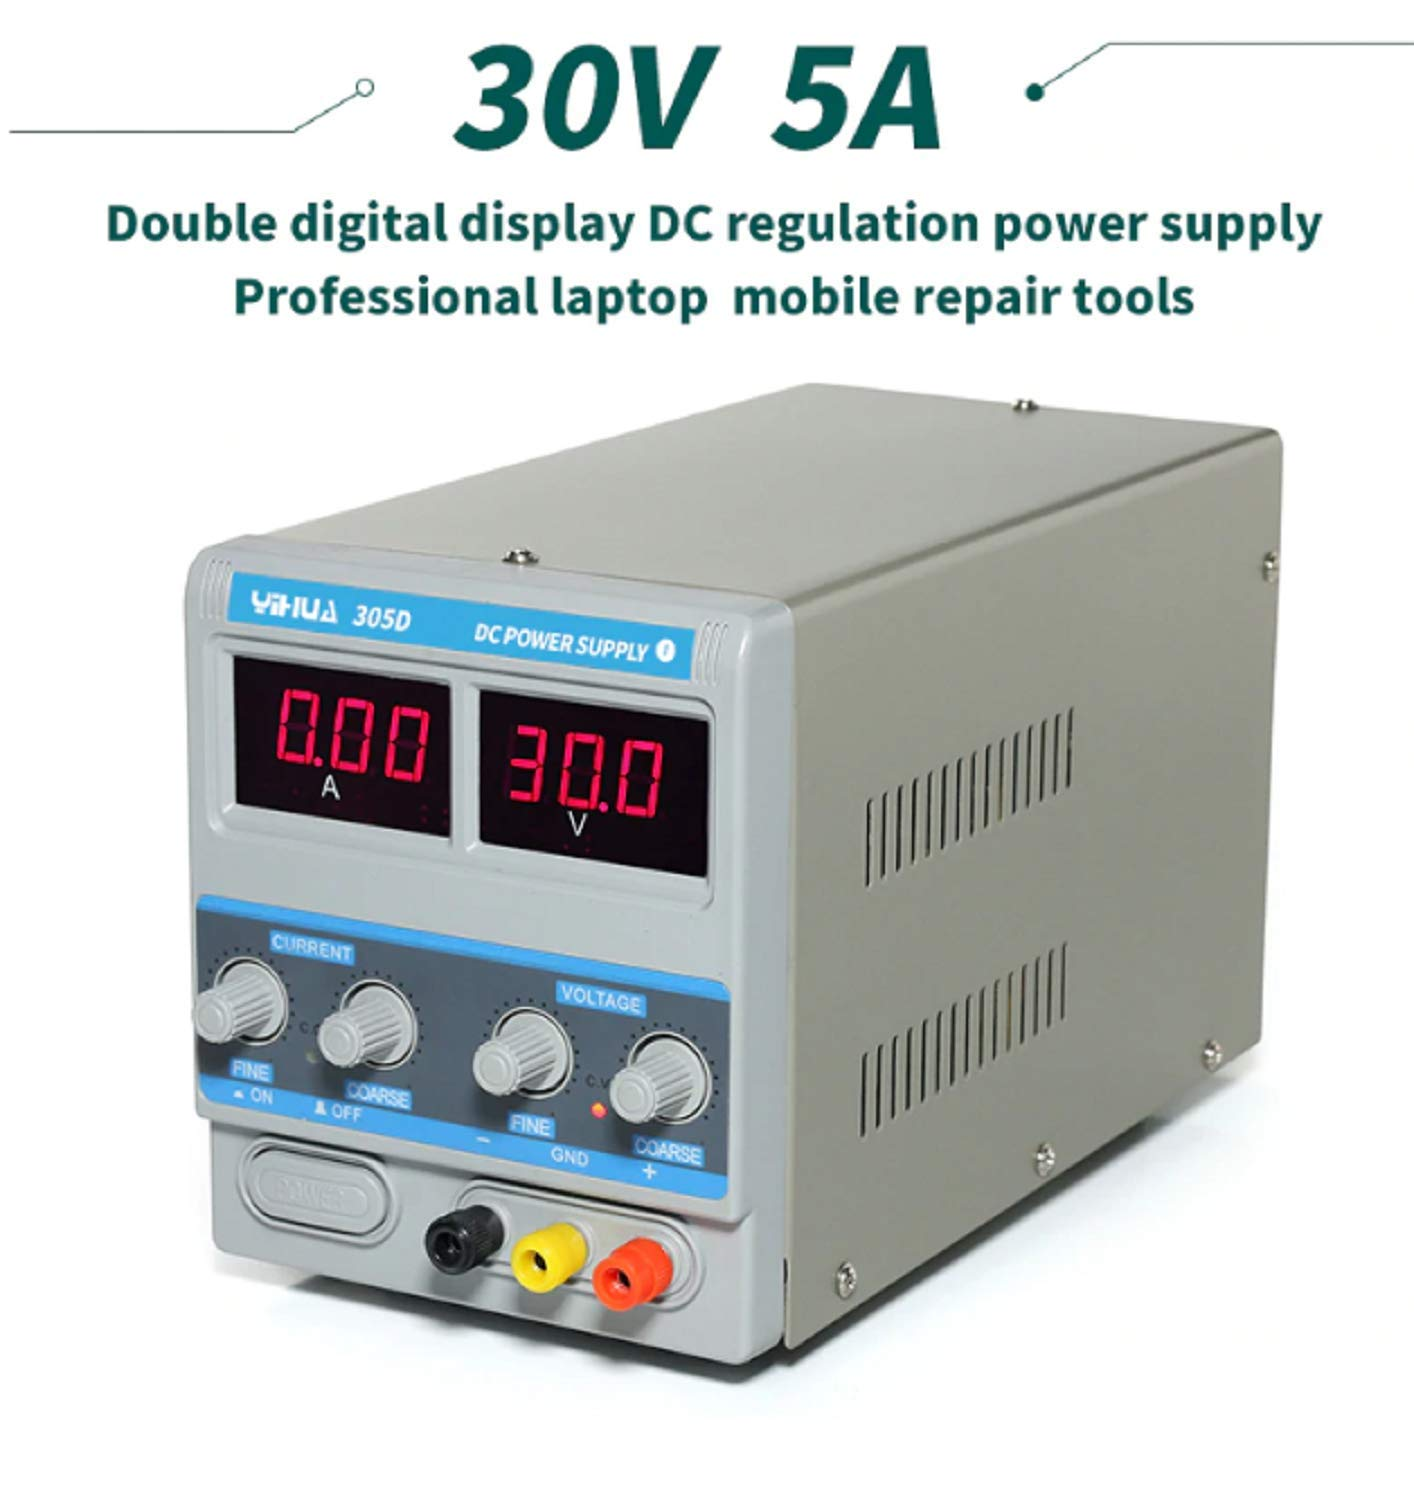 Yihua Digital 30v 5a Dc Power Supply Variable Regulated Adjustable Mobile Repair Short Circuit Diy For Electronics Projects Repairing Board Machine Phone Volt Amp